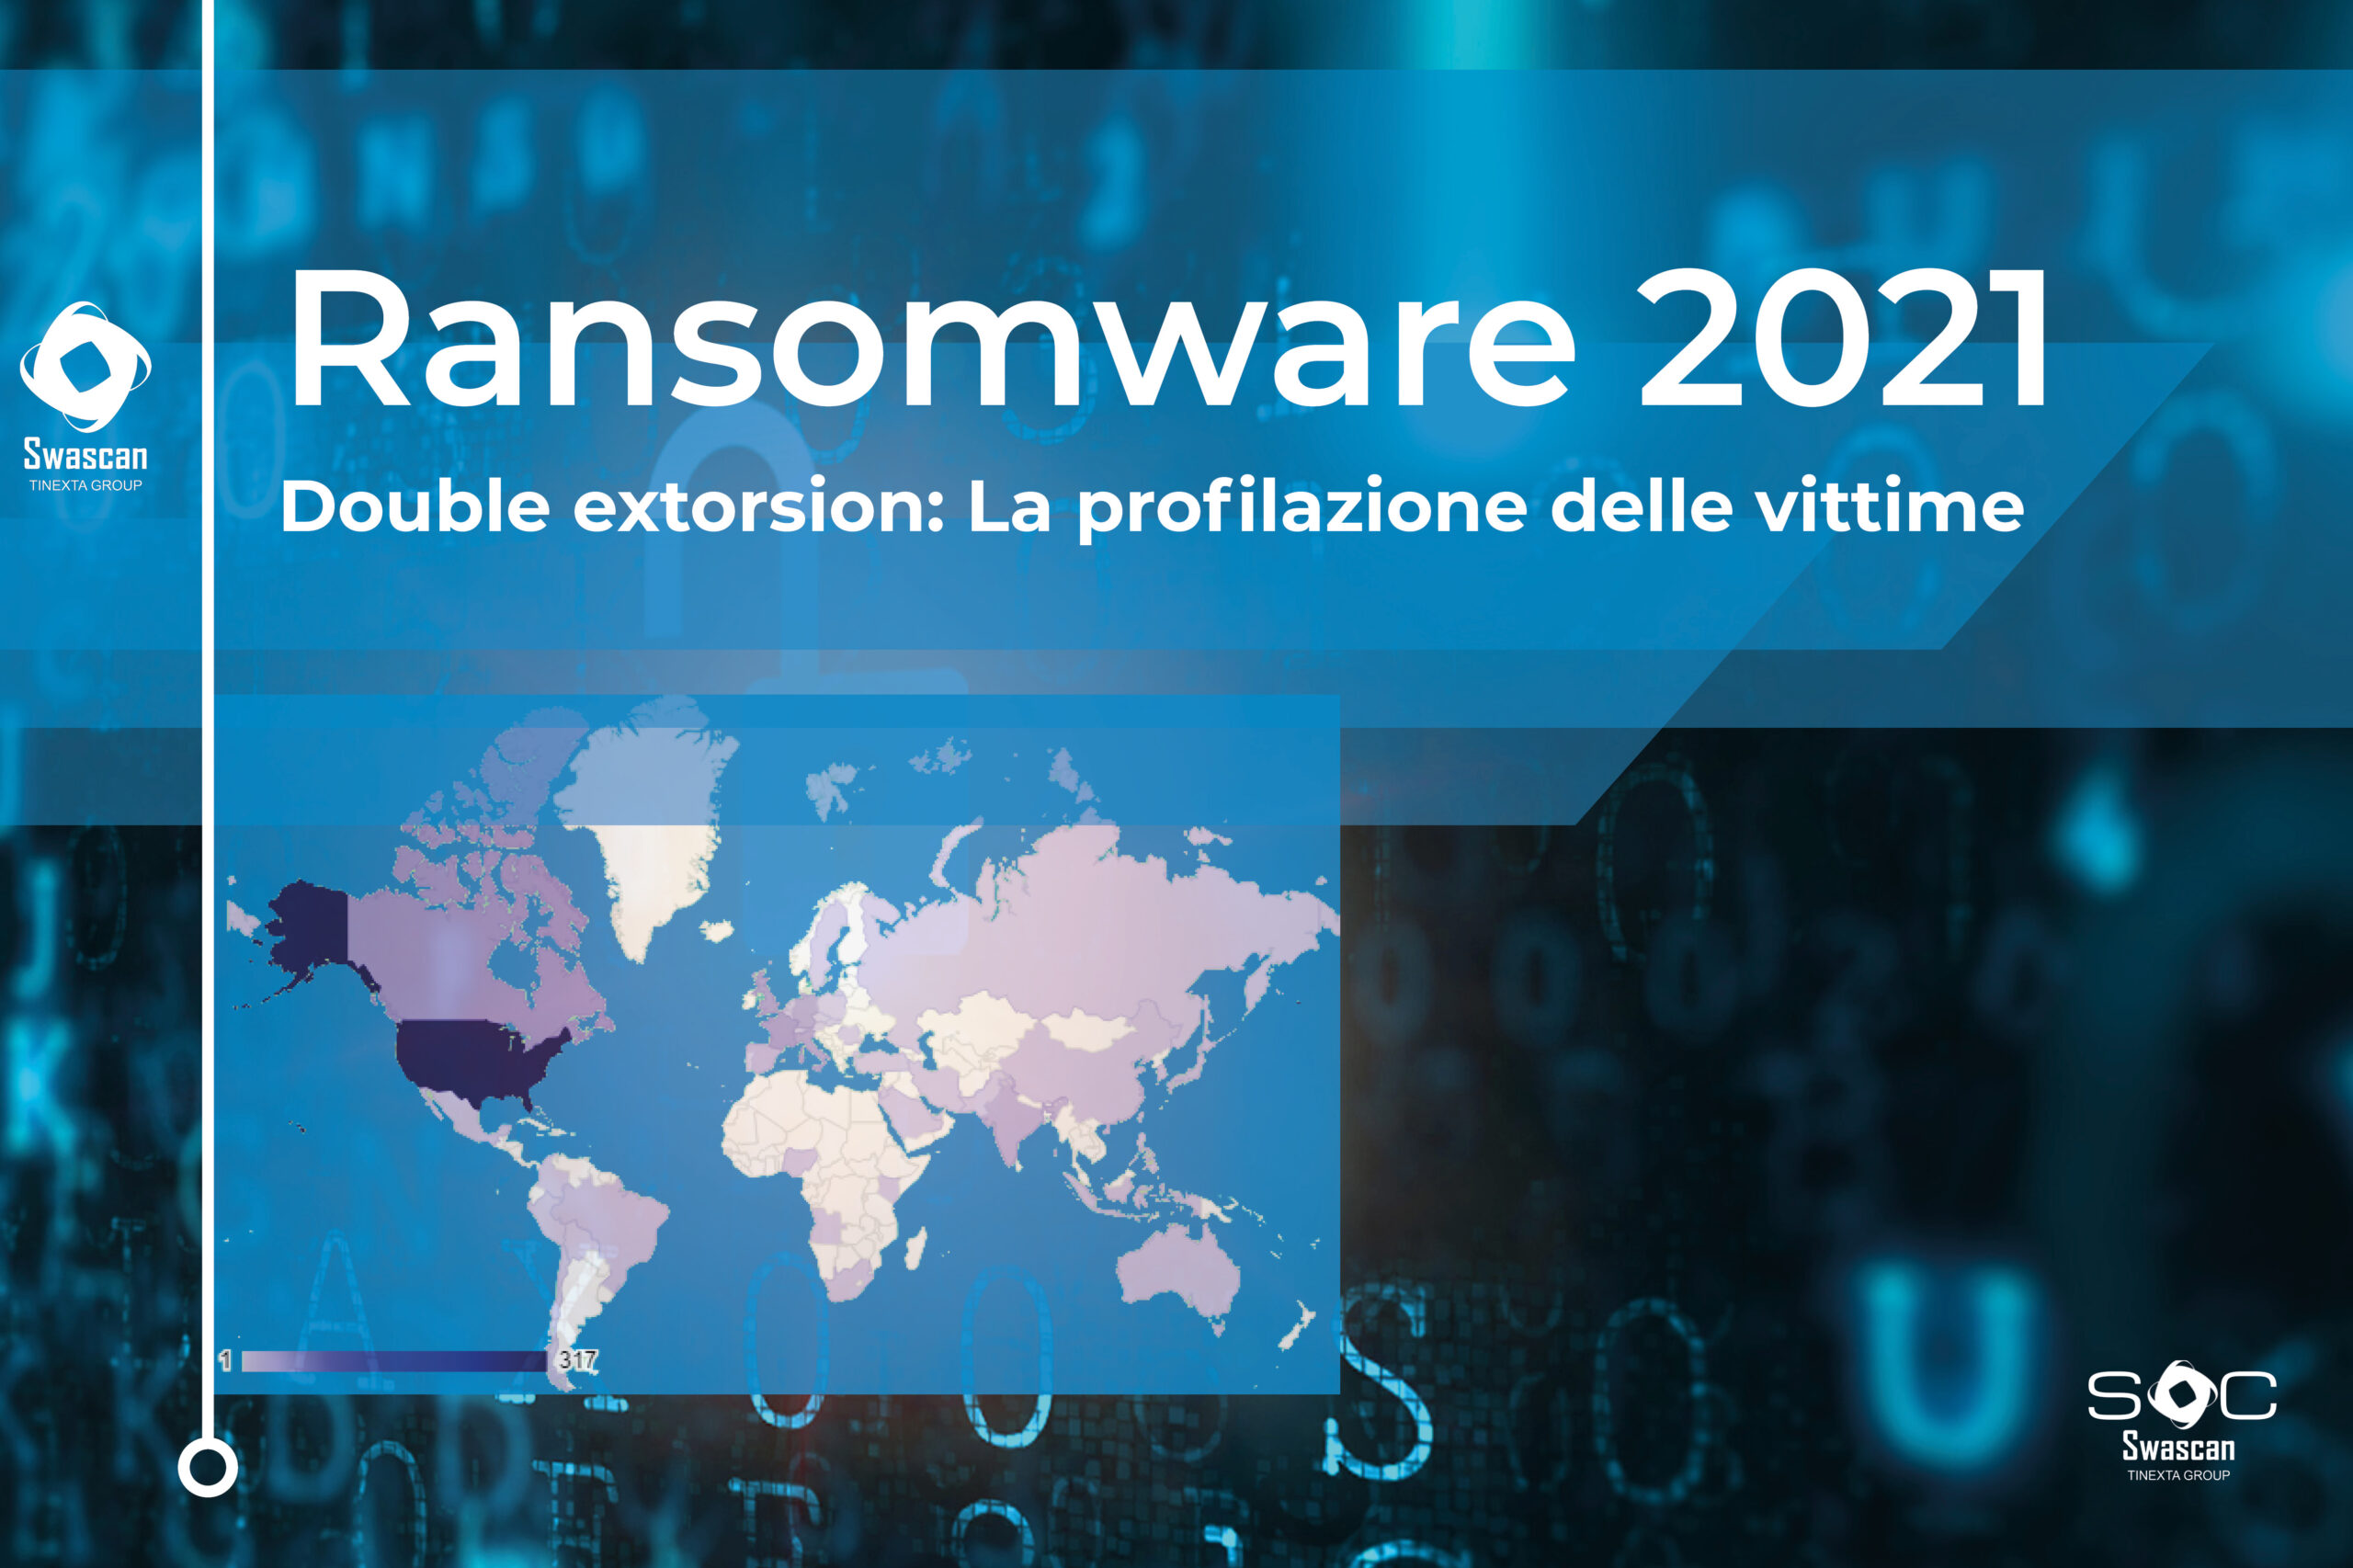 Ransomware Double Extortion 2021